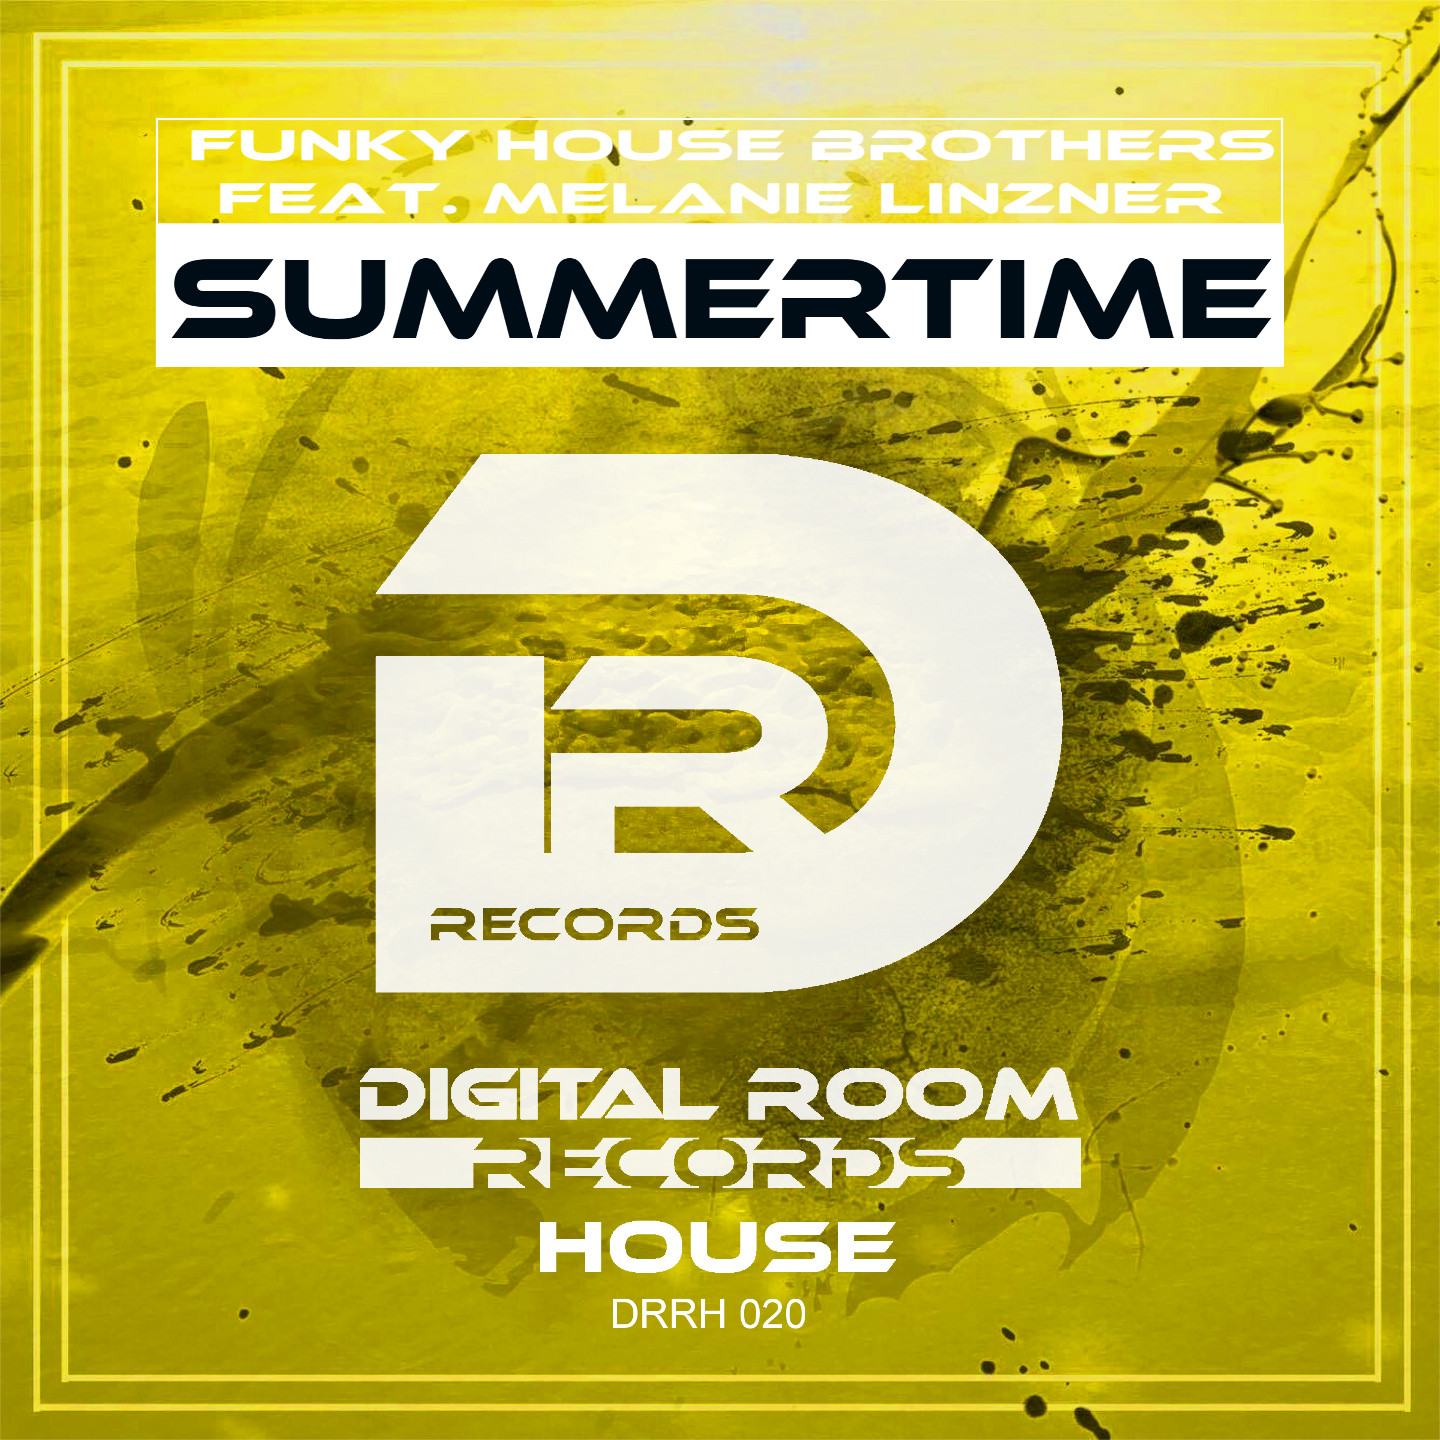 FUNKY HOUSE BROTHERS FEAT. MELANIE LINZNER-Summertime